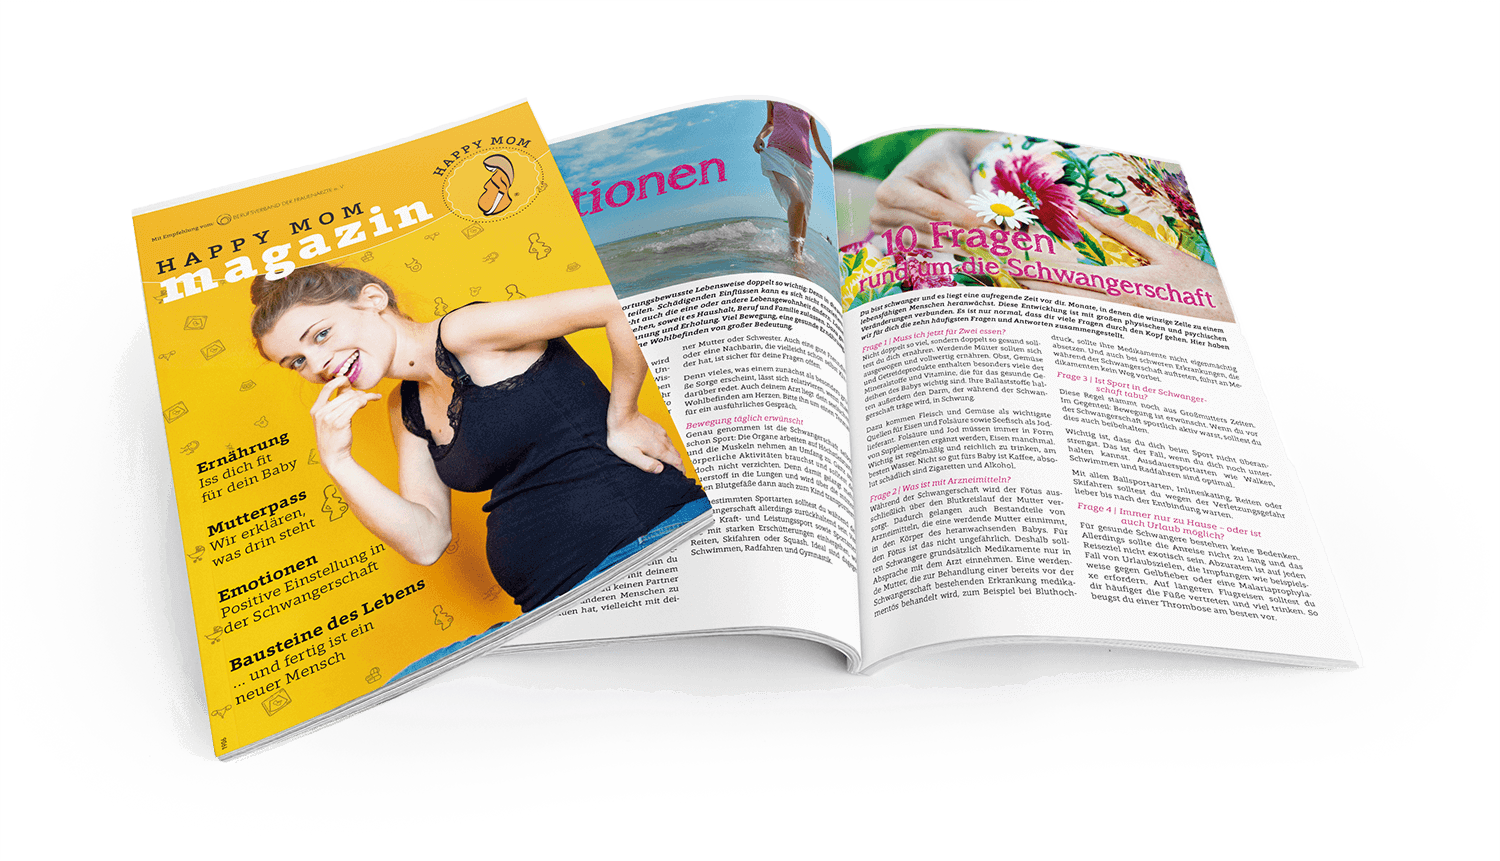 HappyMom magazine, the information medium for expectant mothers